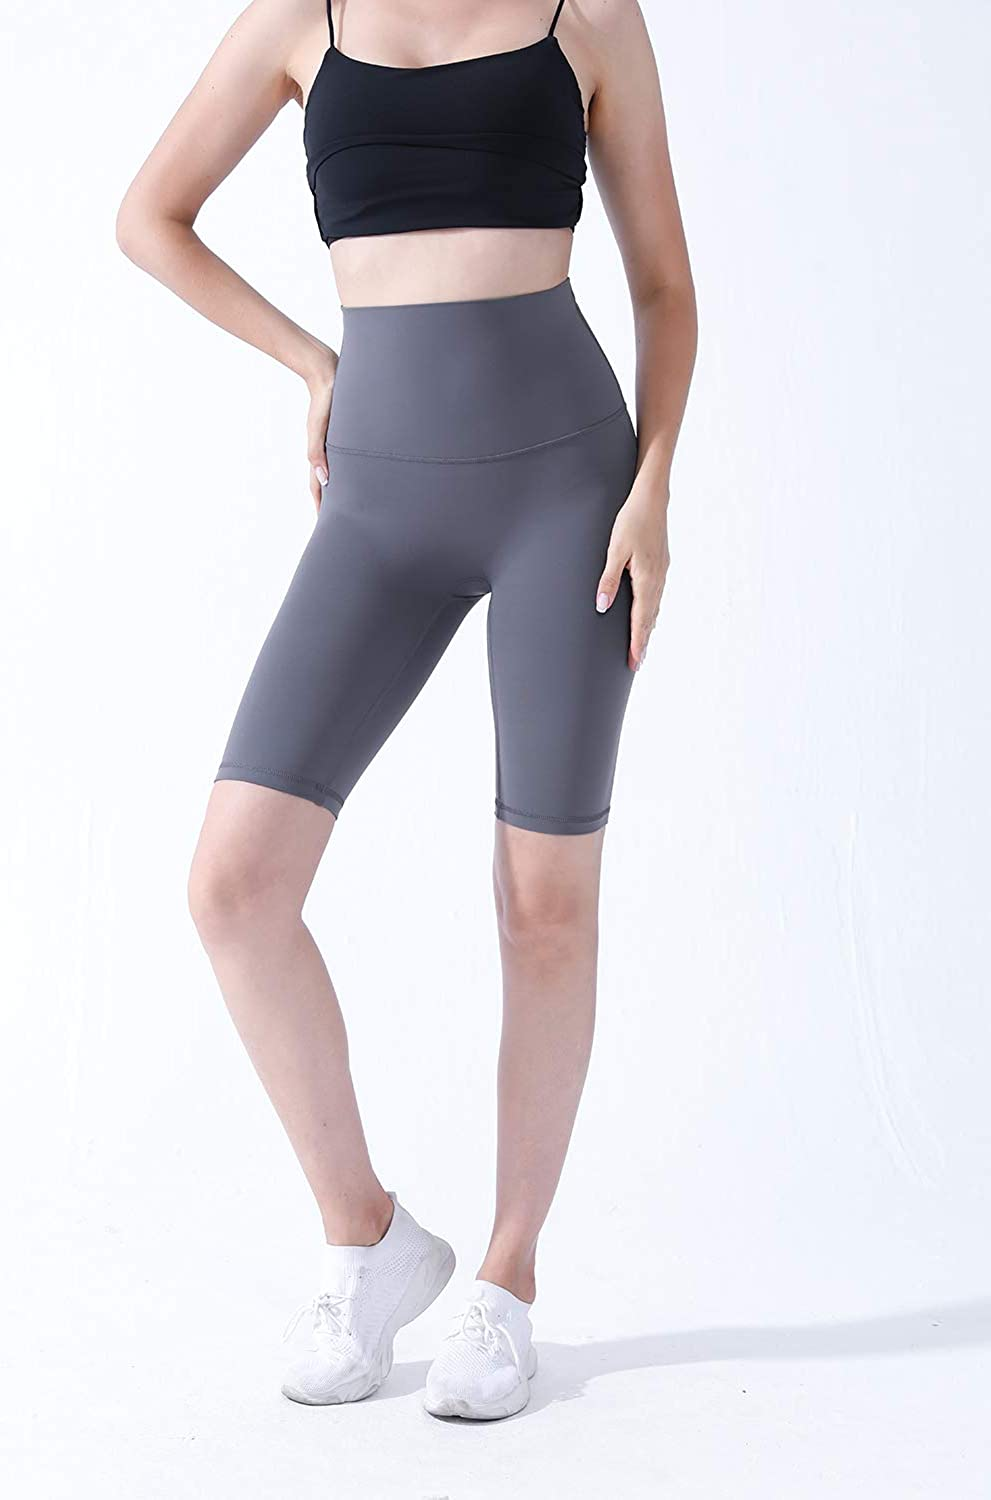 Cagog High Waist Workout Yoga Shorts for Women Tummy Control Non See-Through Athletic Shorts